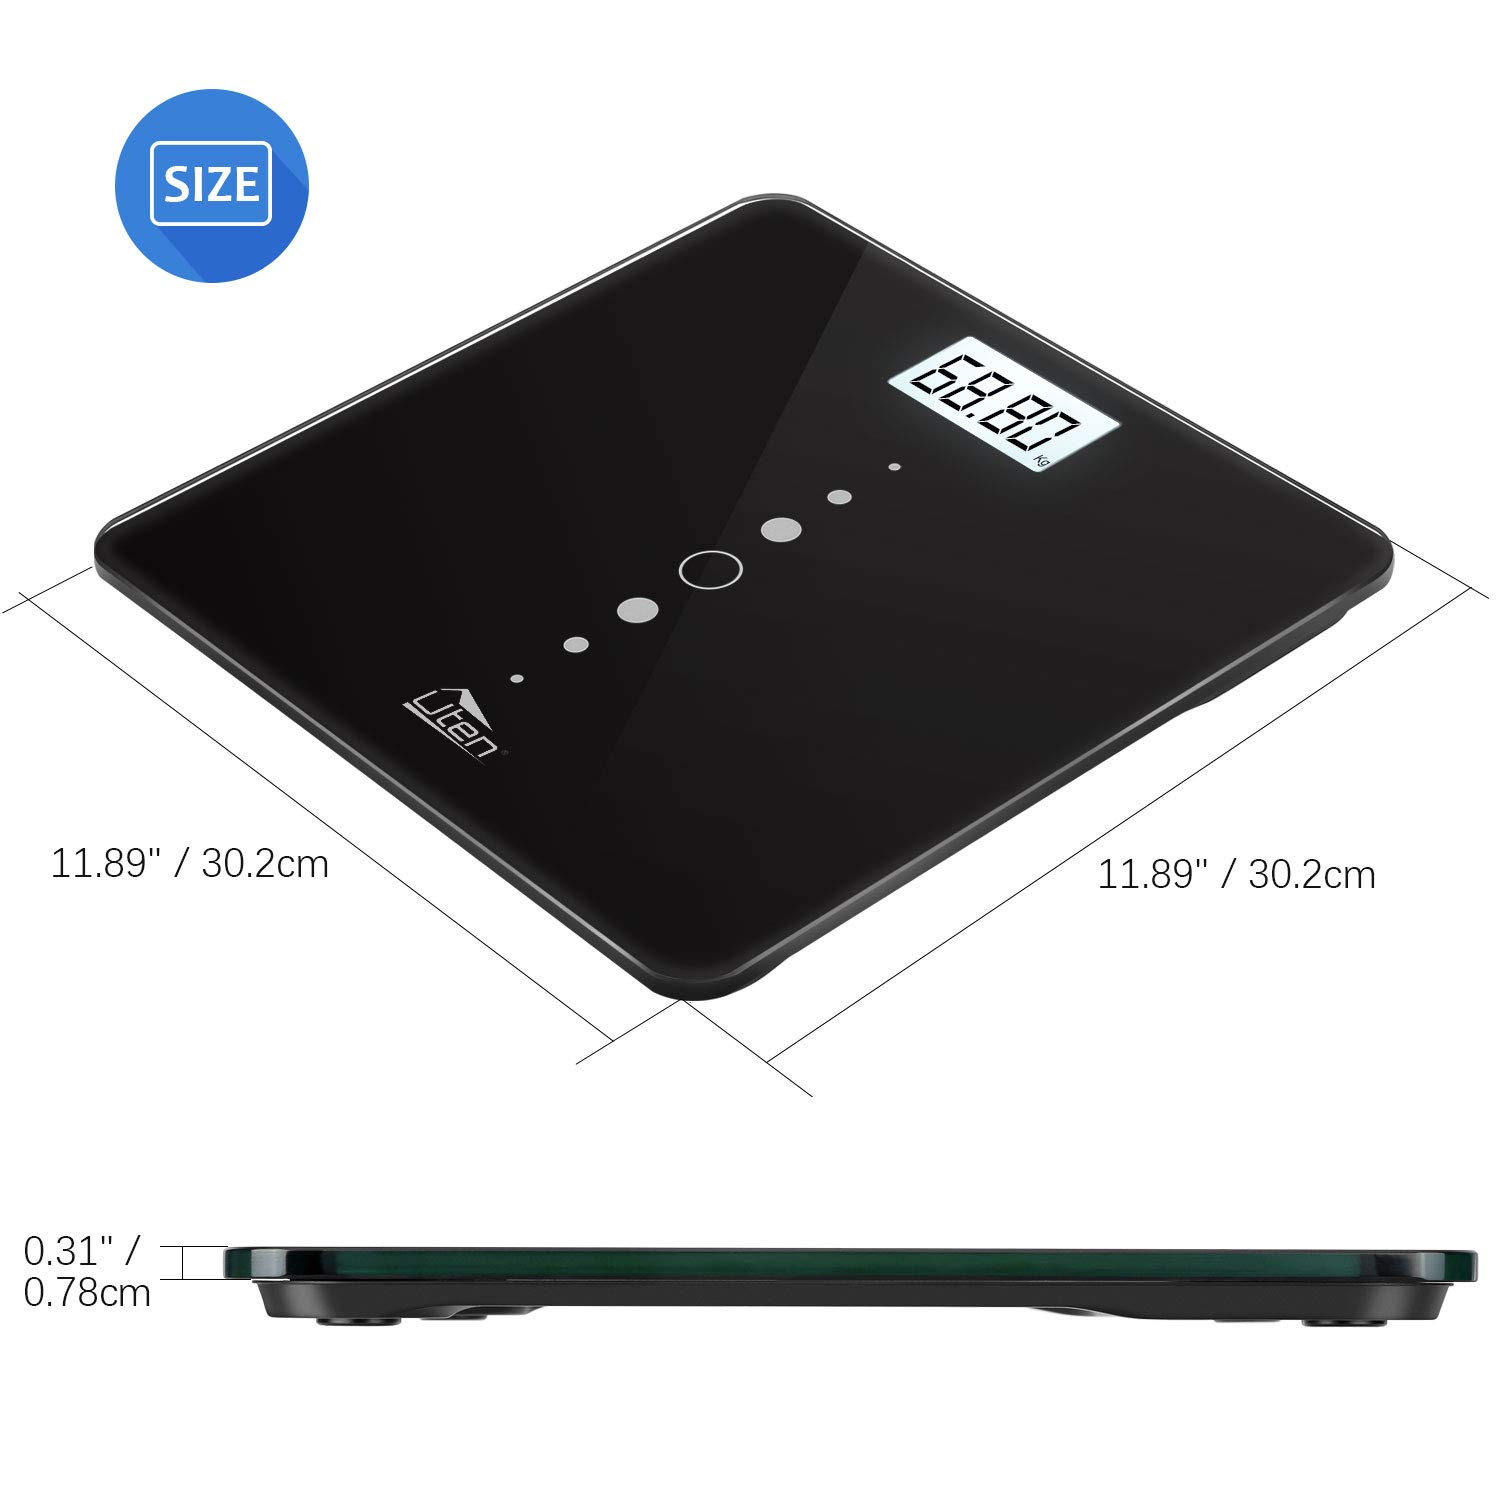 Uten Digital Bathroom Scales High Precision Weighing Scale with Step-On Technology,Backlight Display,200kg//440lb//31st